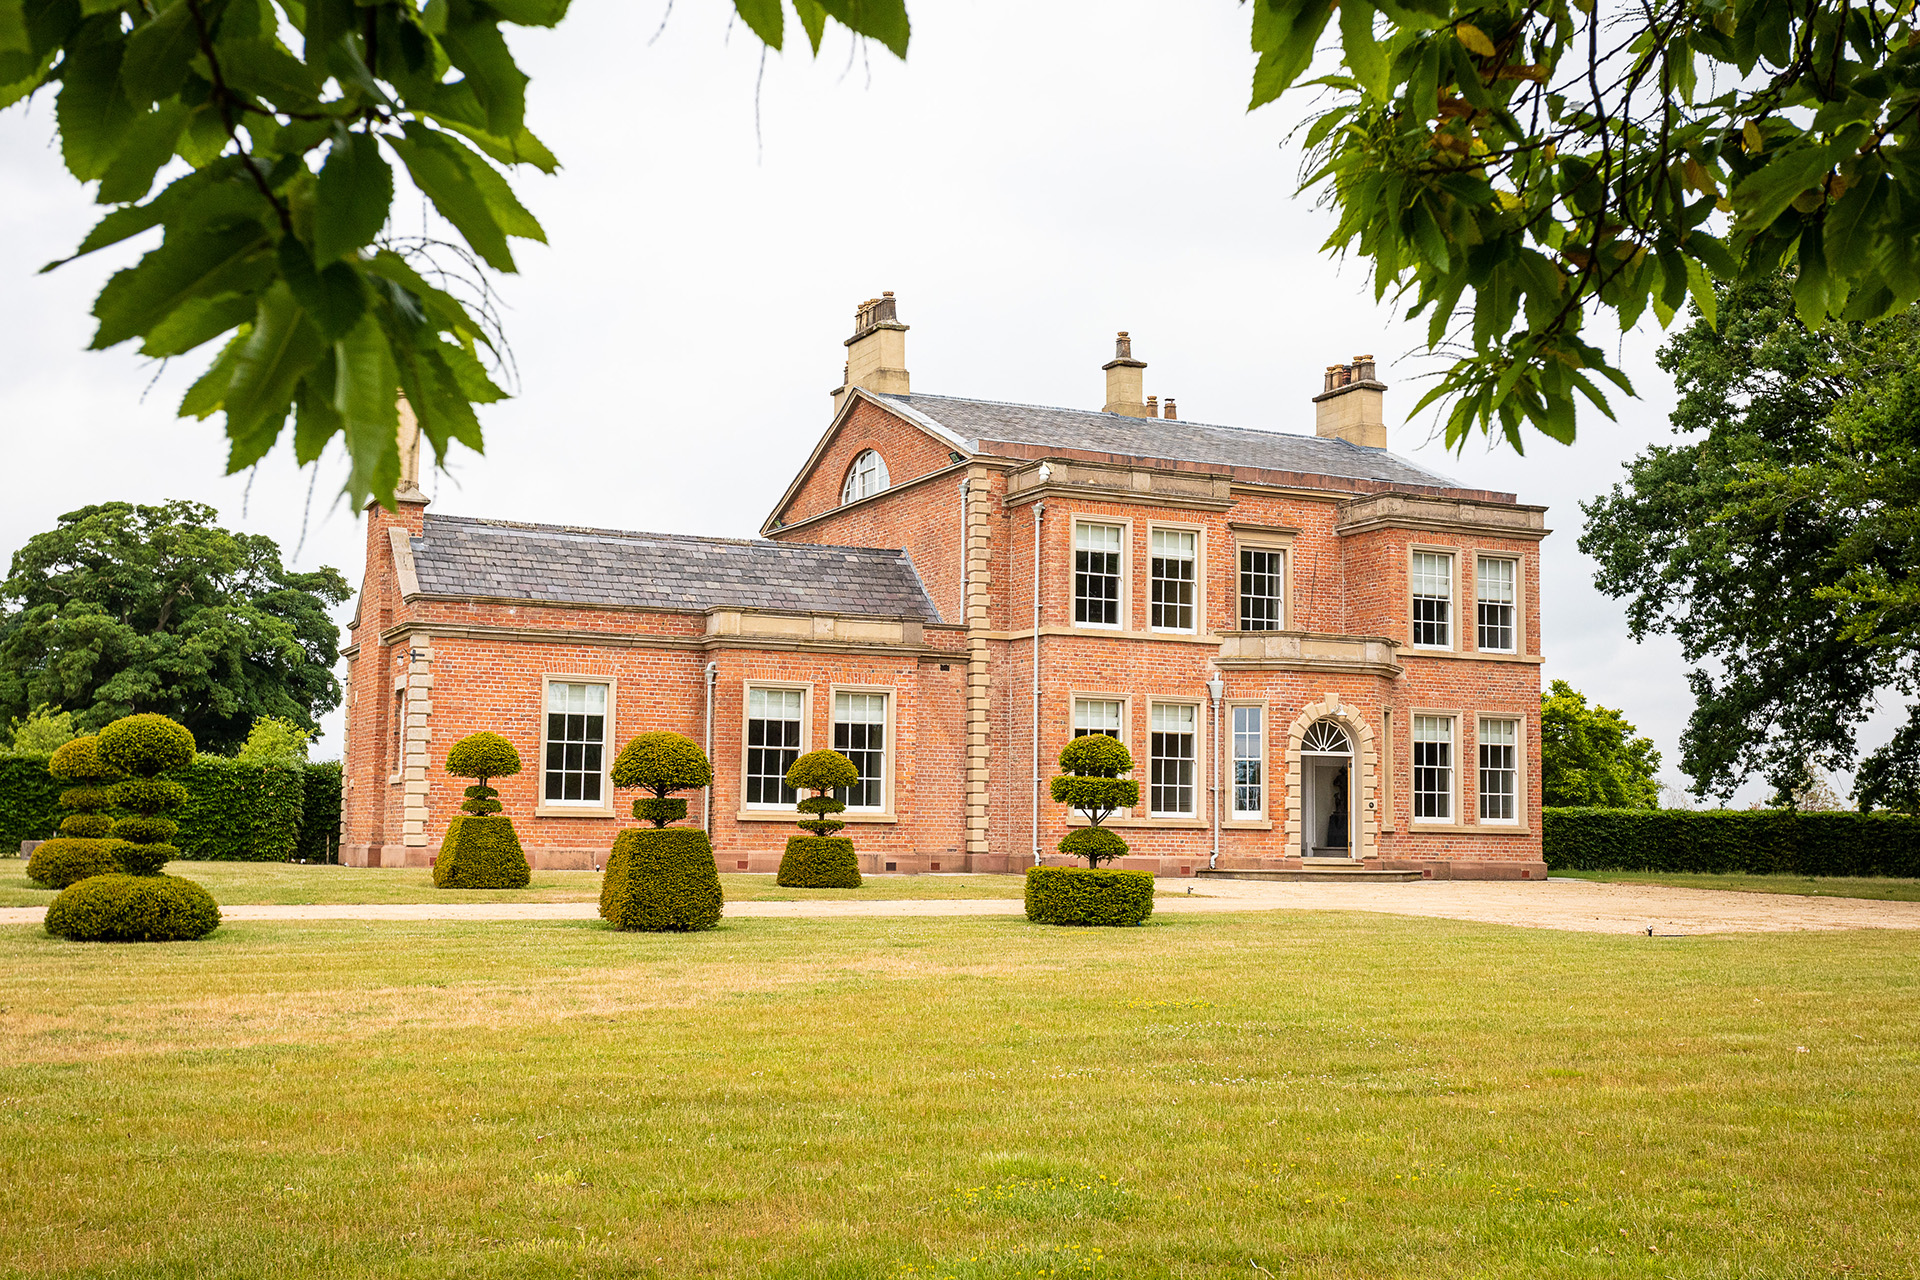 luxury English manor house mansion country estate countryside